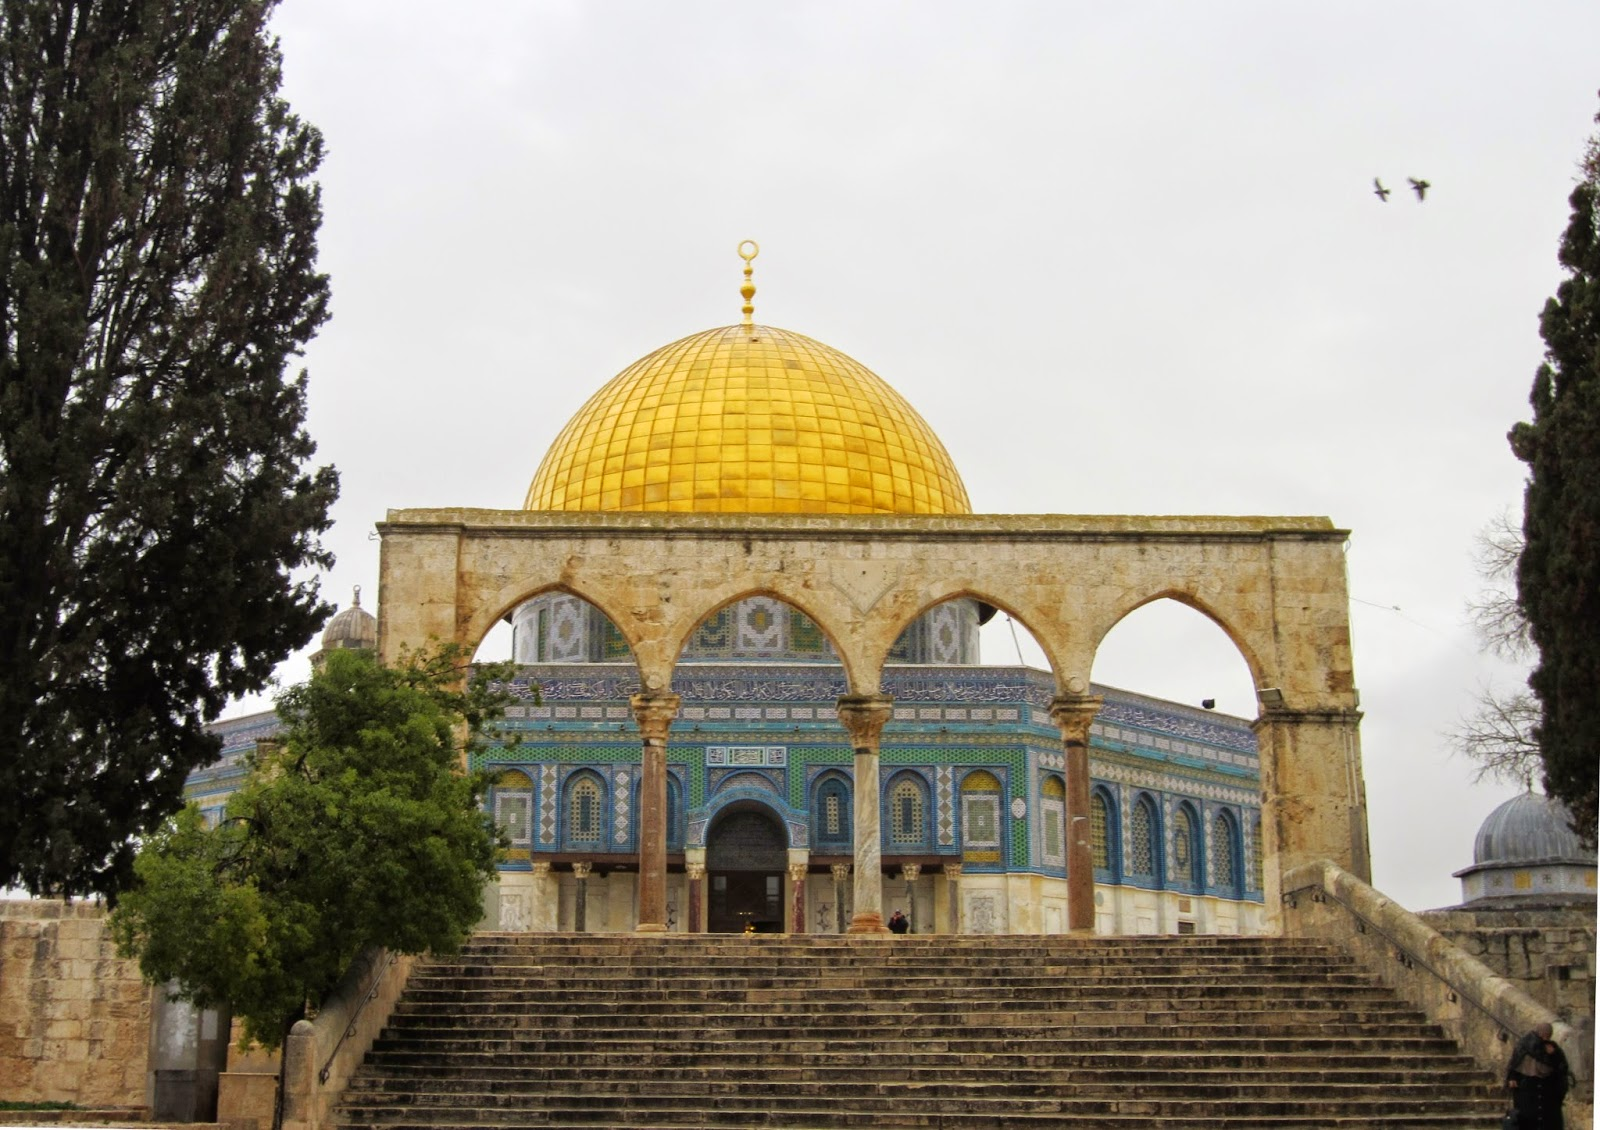 View of Dome of the Rock through arched gates / Souvenir Chronicles